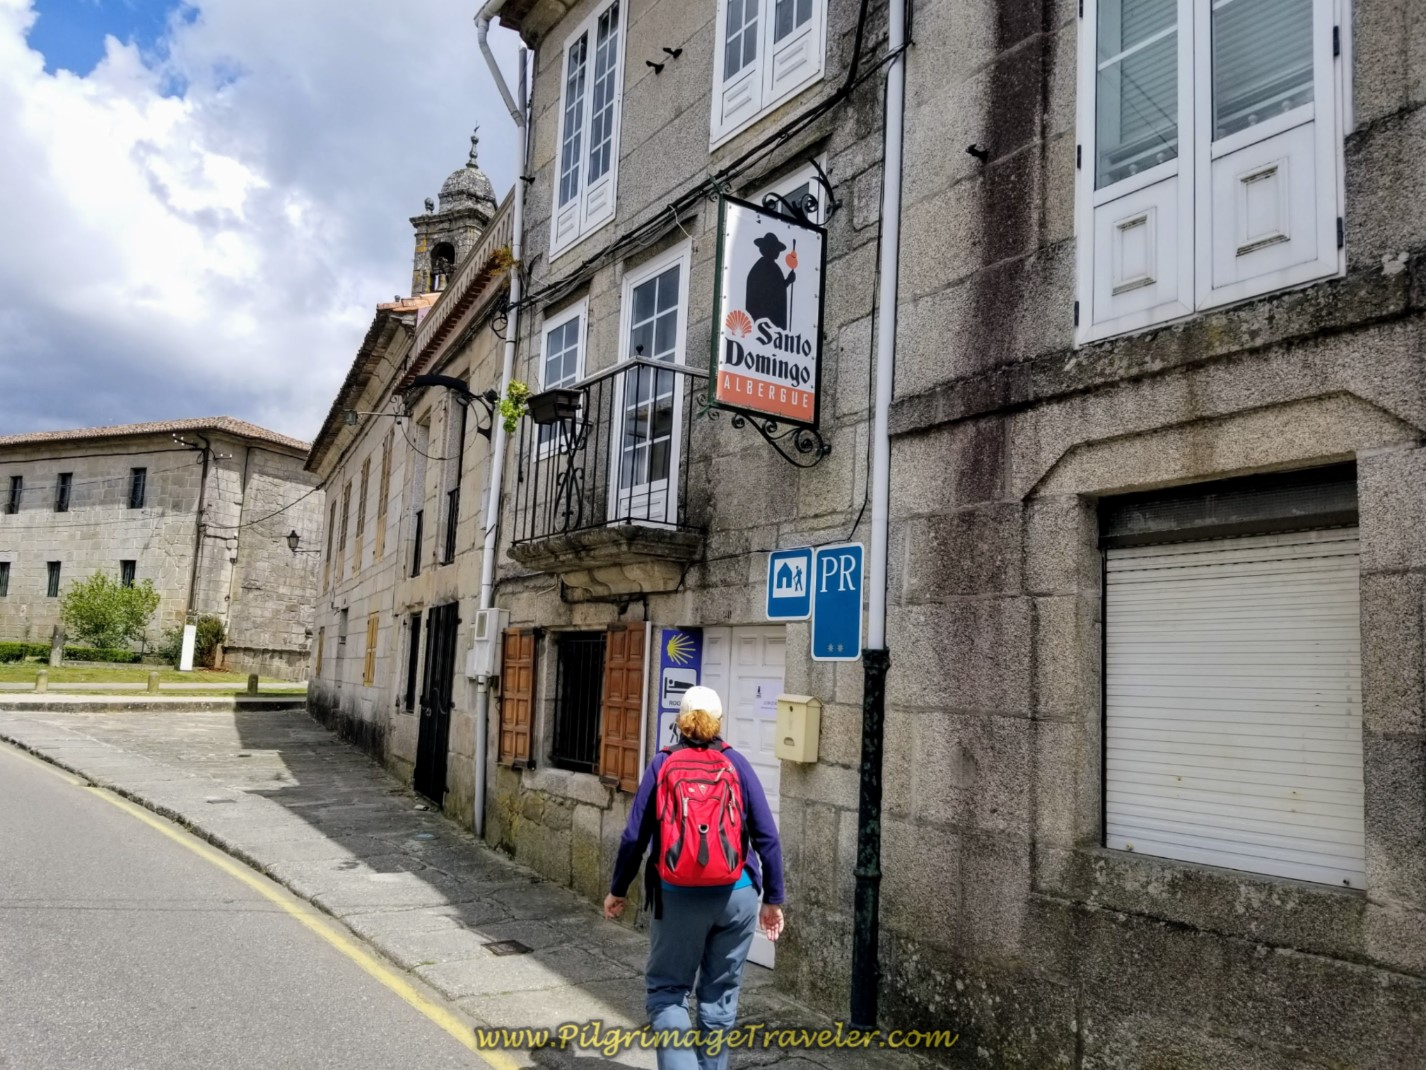 Albergue Santo Domingo in Tui on day nineteen on the Central Route of the Portuguese Camino